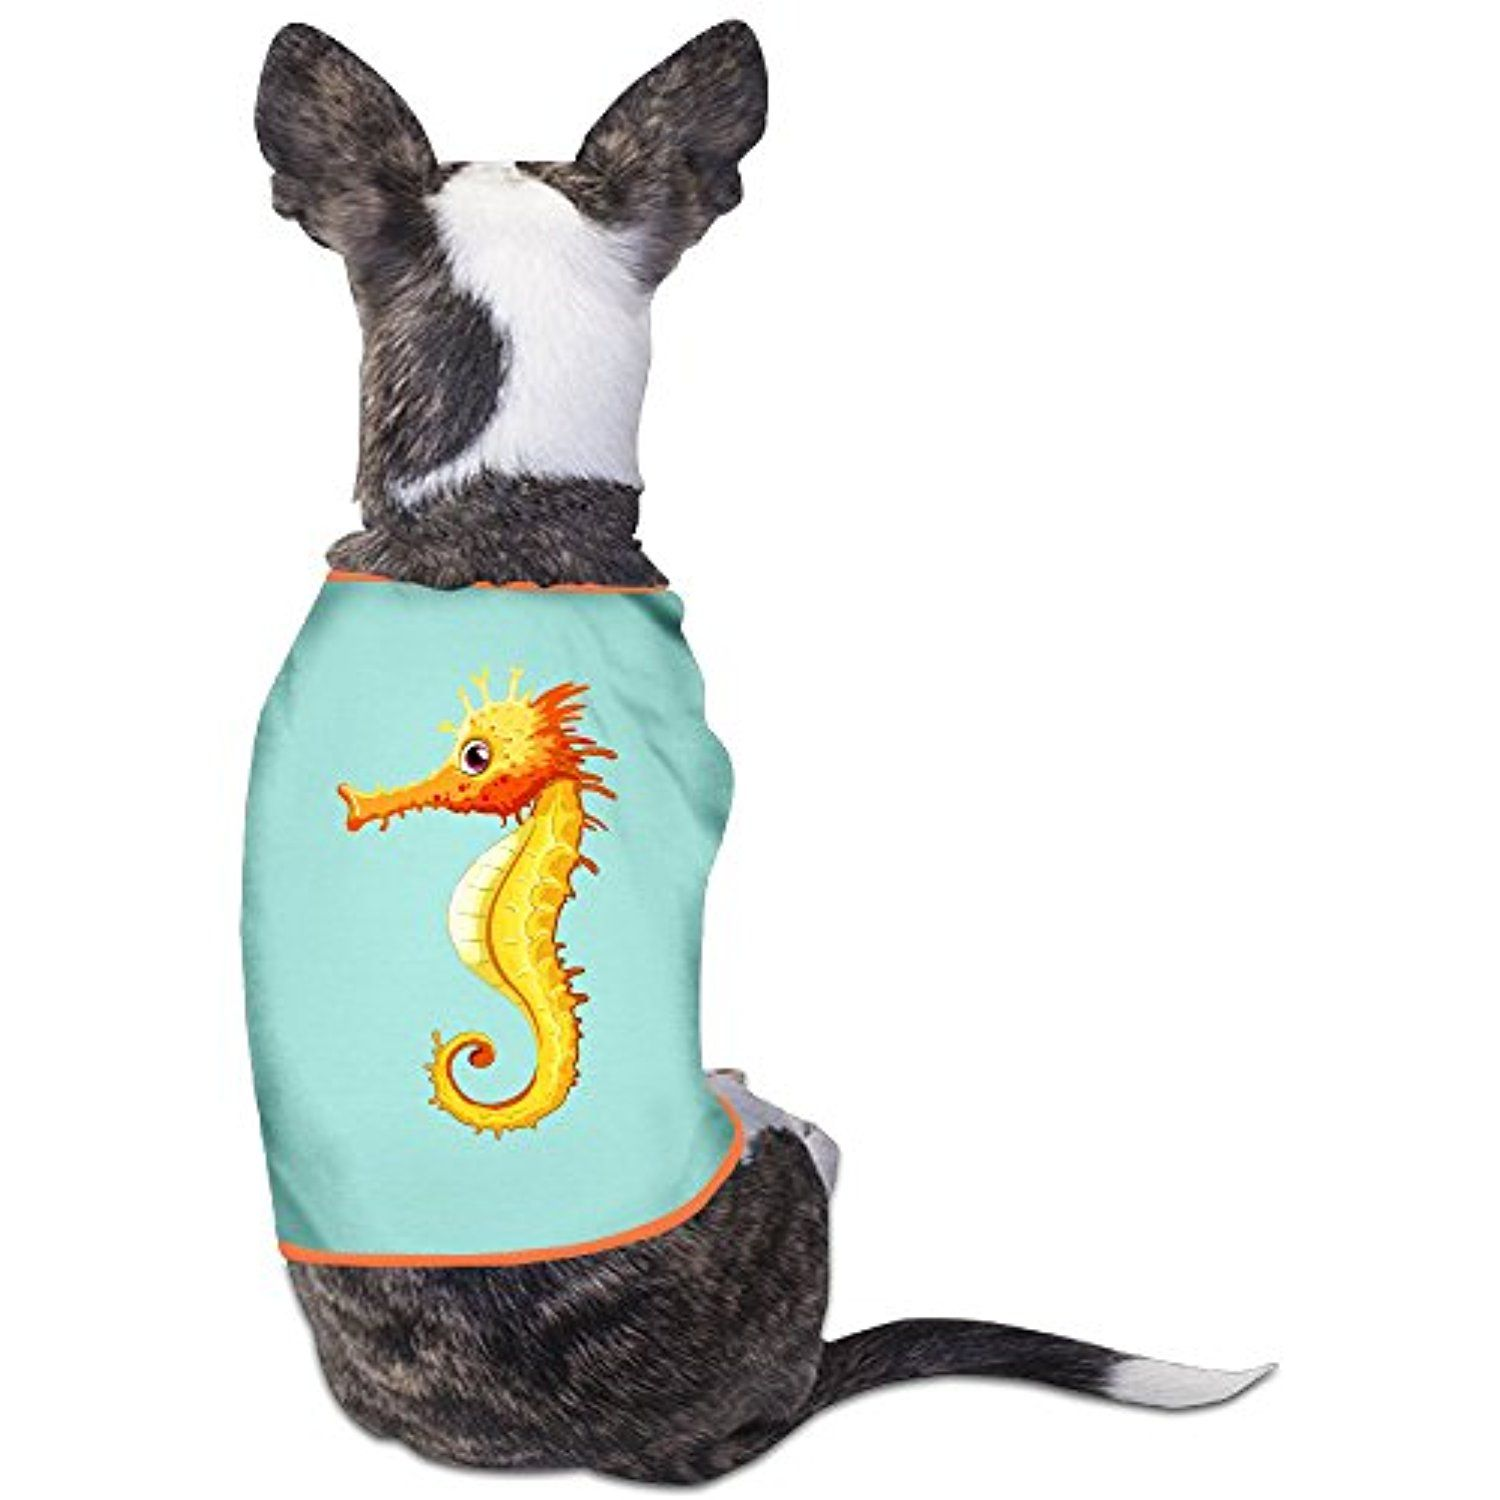 Hippocampus Pet Shirts Dog Puppy T-Shirt Clothes Outfit Multicolor *** Find out more about the great product at the image link. (This is an affiliate link) #DogApparelAccessories